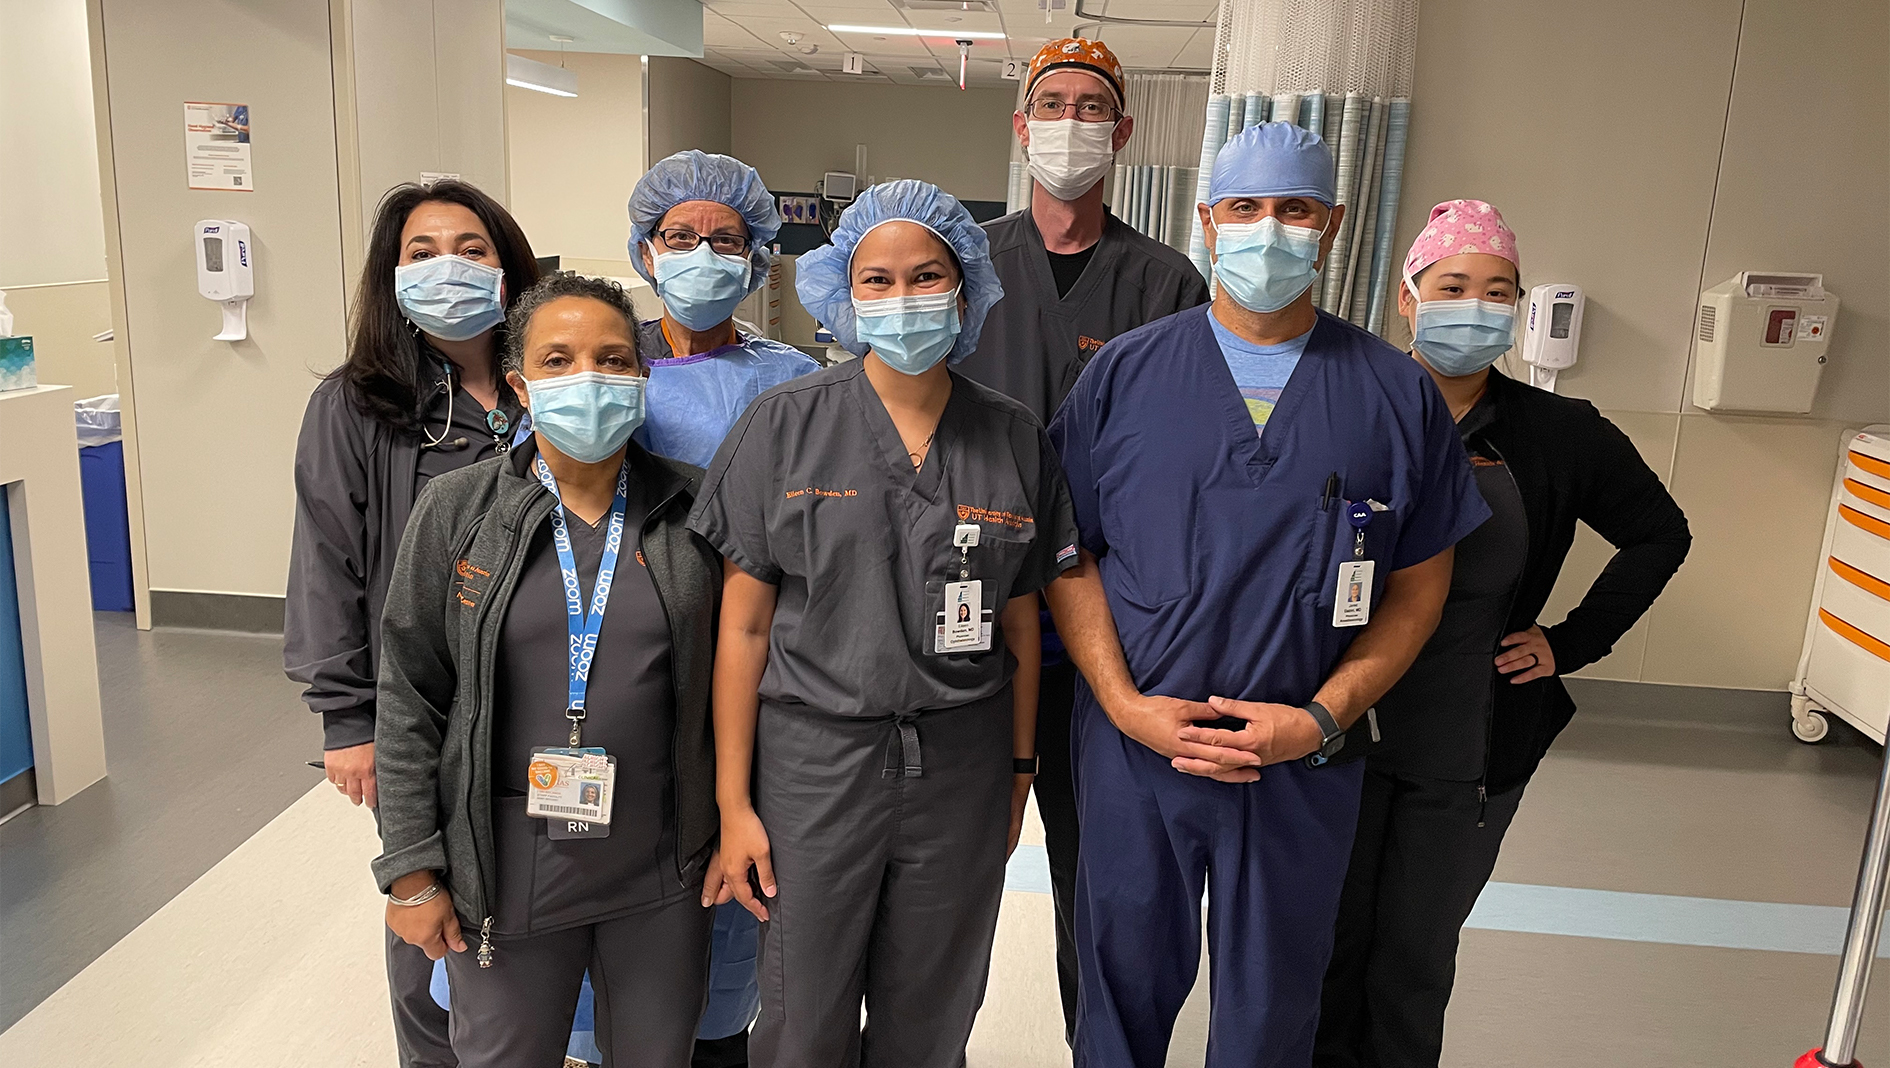 Seven members of the Ophthalmology Residency in a group photo.